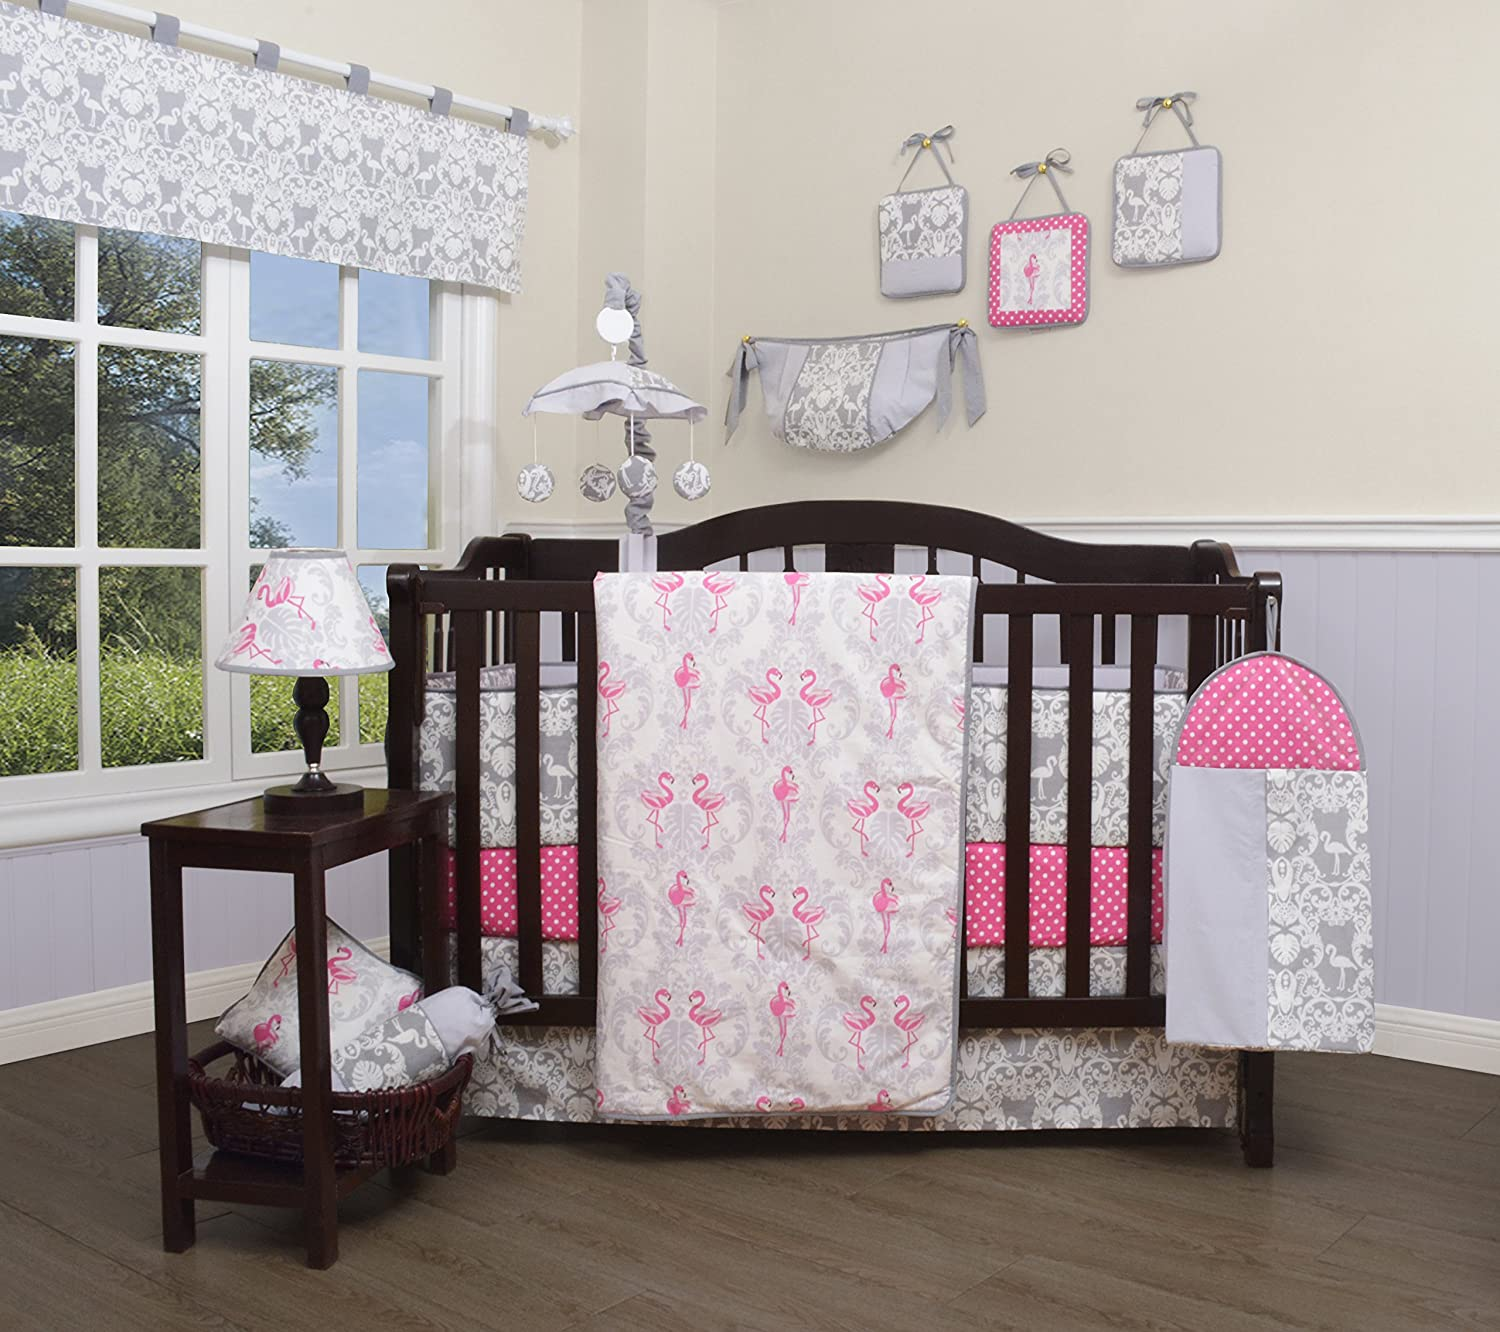 GEENNY 13 Piece Boutique Baby Nursery Crib Bedding Set, Flamingo Bird, Multi-Colors, Crib